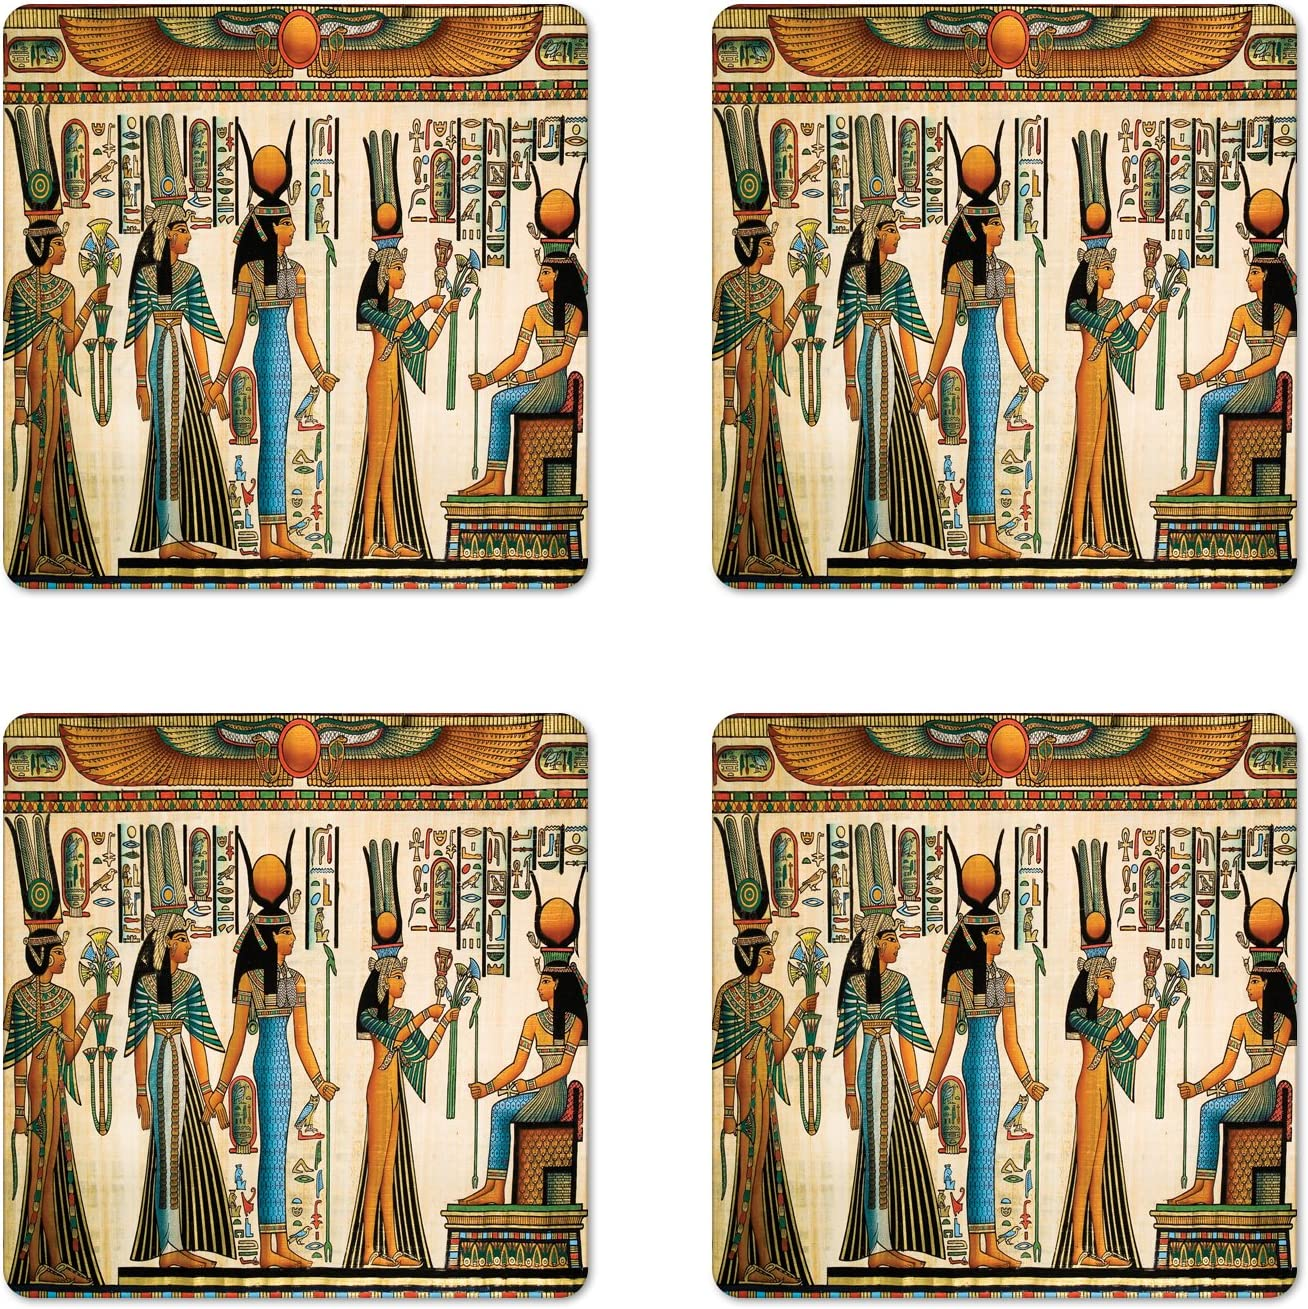 Lunarable Egyptian Print Coaster Set of 4, Egyptian Papyrus Depicting Queen Nefertari Making an Offering to Isis Image, Square Hardboard Gloss Coasters, Standard Size, Teal Orange